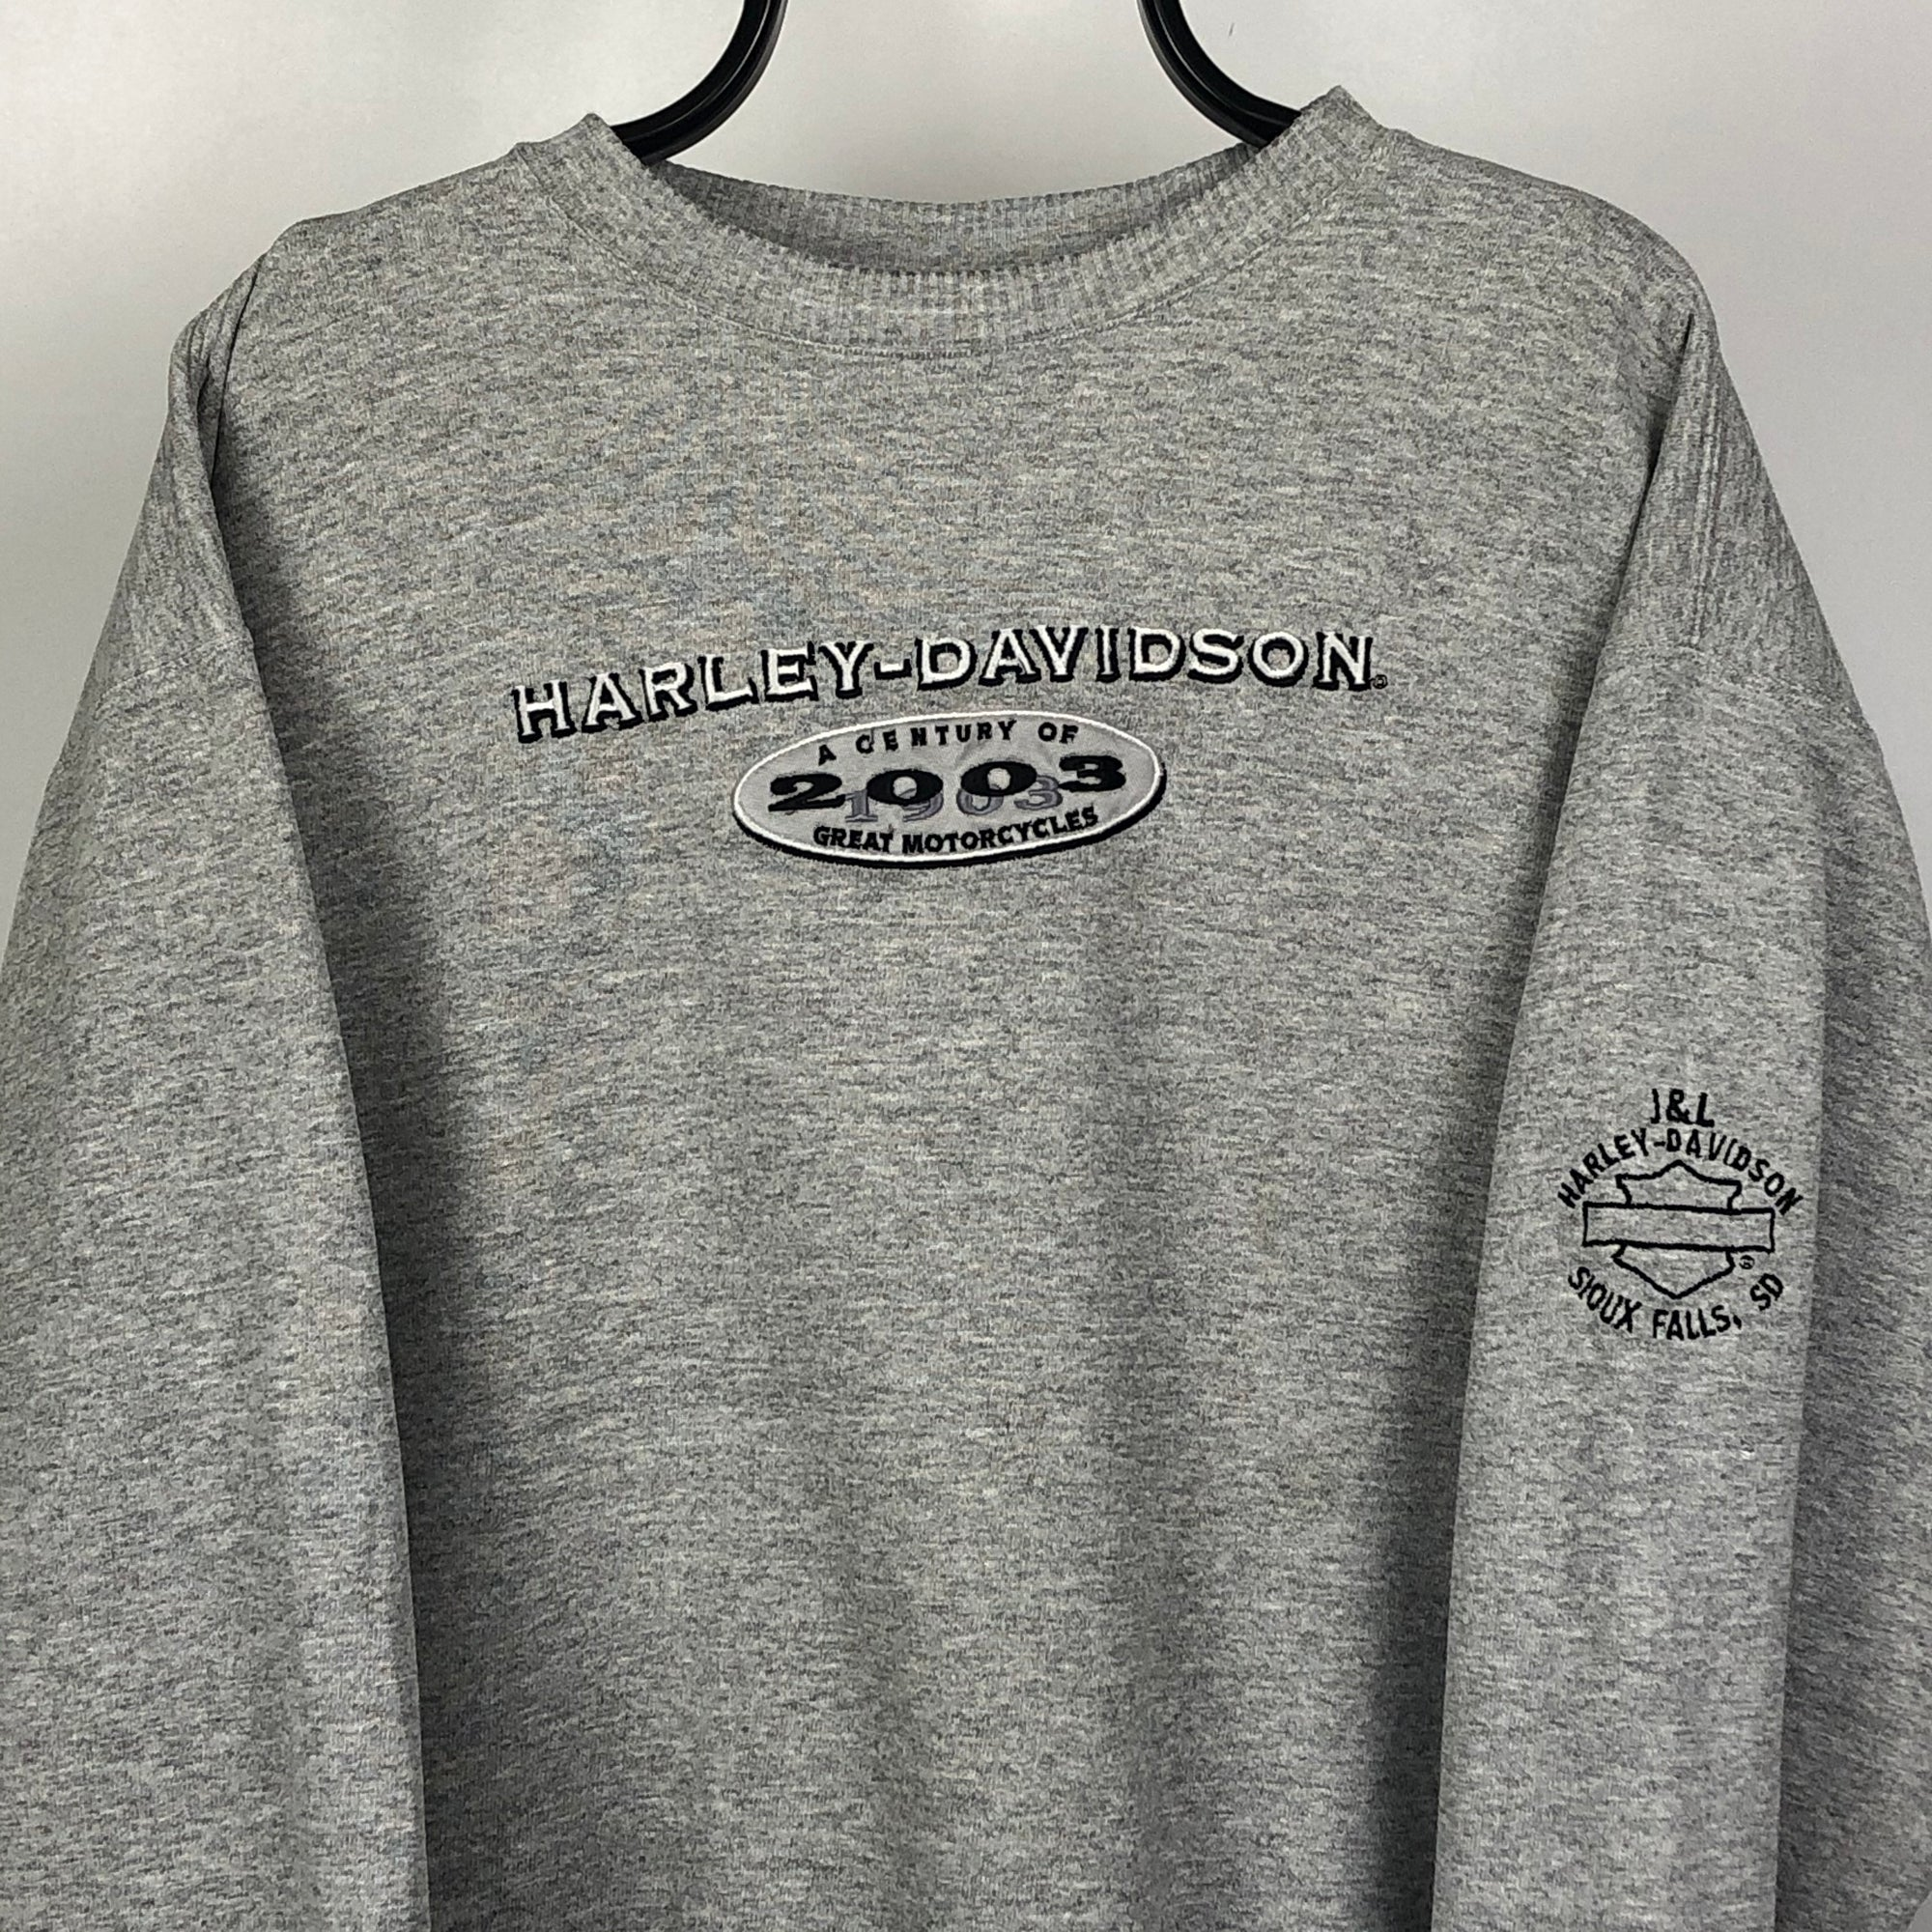 Harley Davidson '2003 Century' Sweatshirt - Men's Large/Women's XL